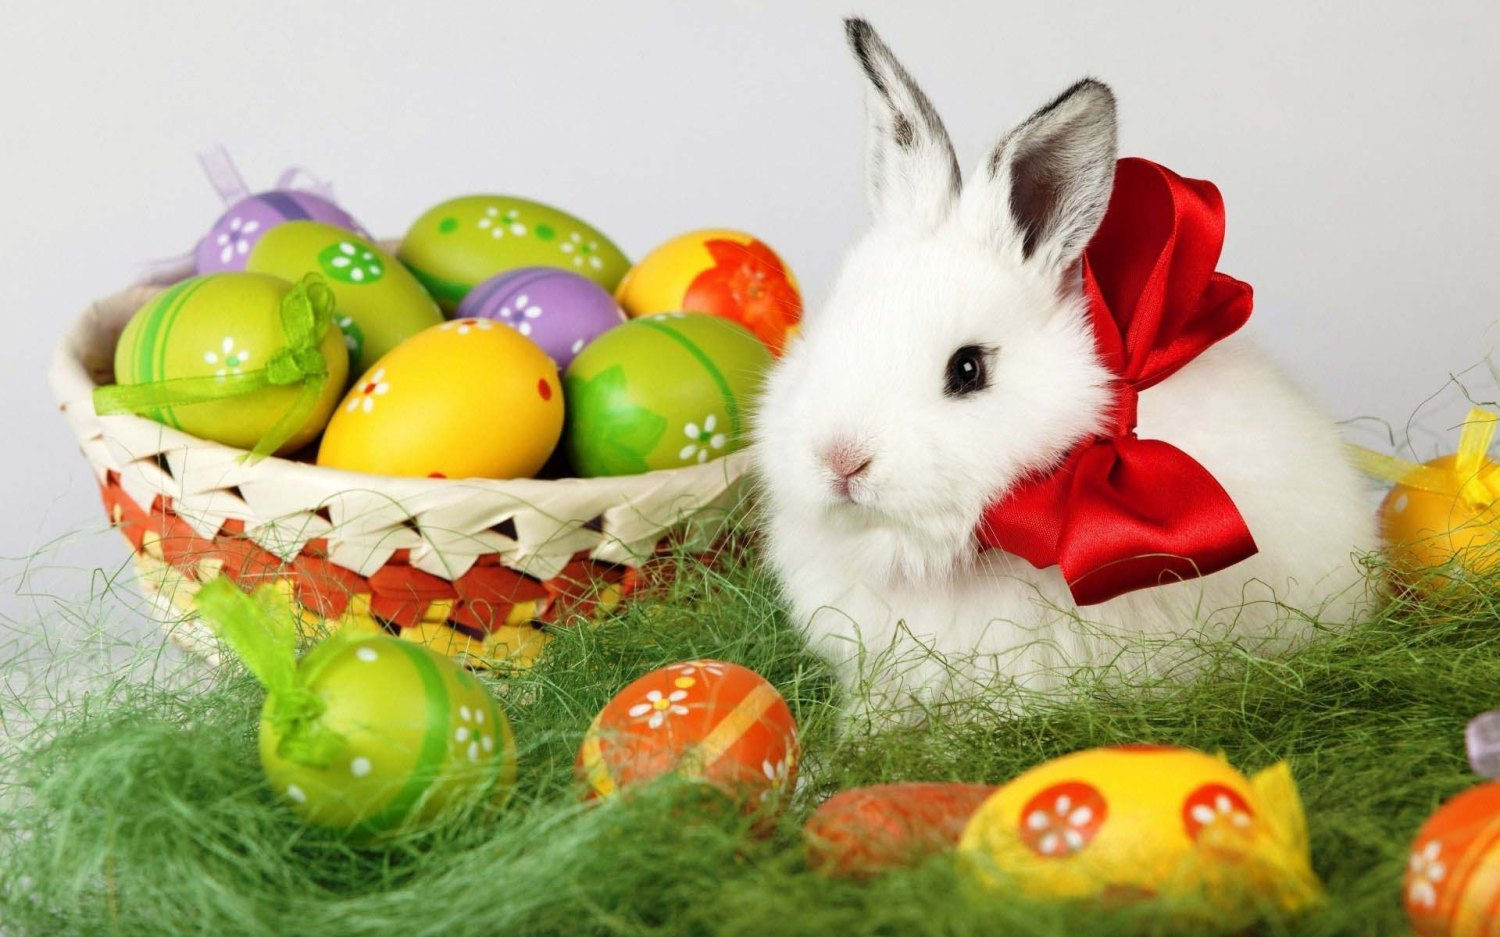 Enotes Enewsthe Rabbit Of Easter He Brings Of The Chocolate